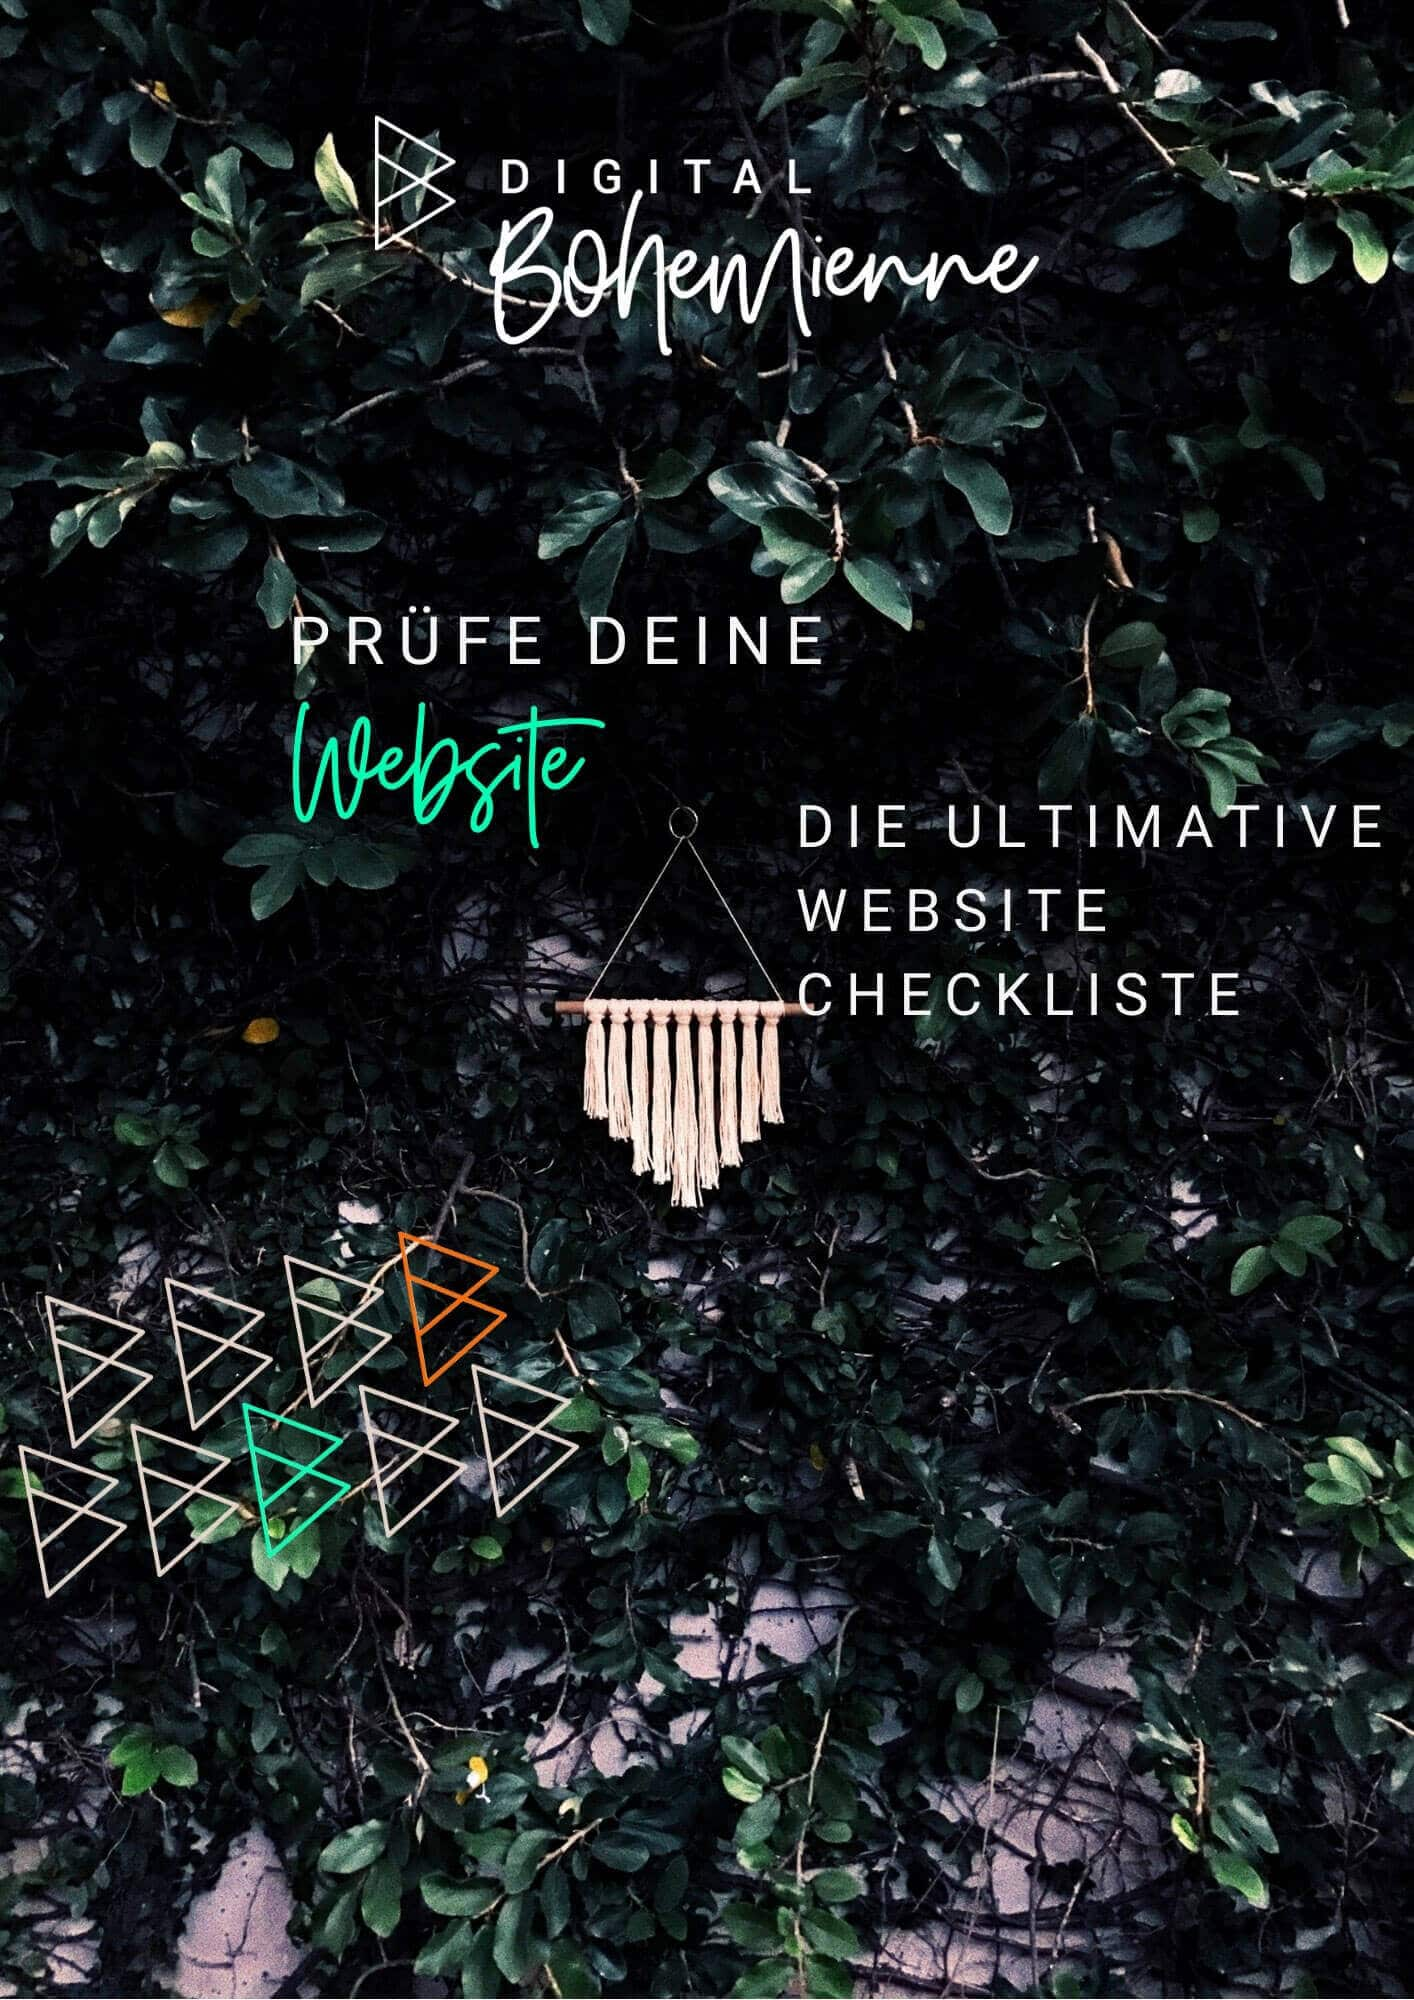 ultimative website checkliste freebie digital bohemienne